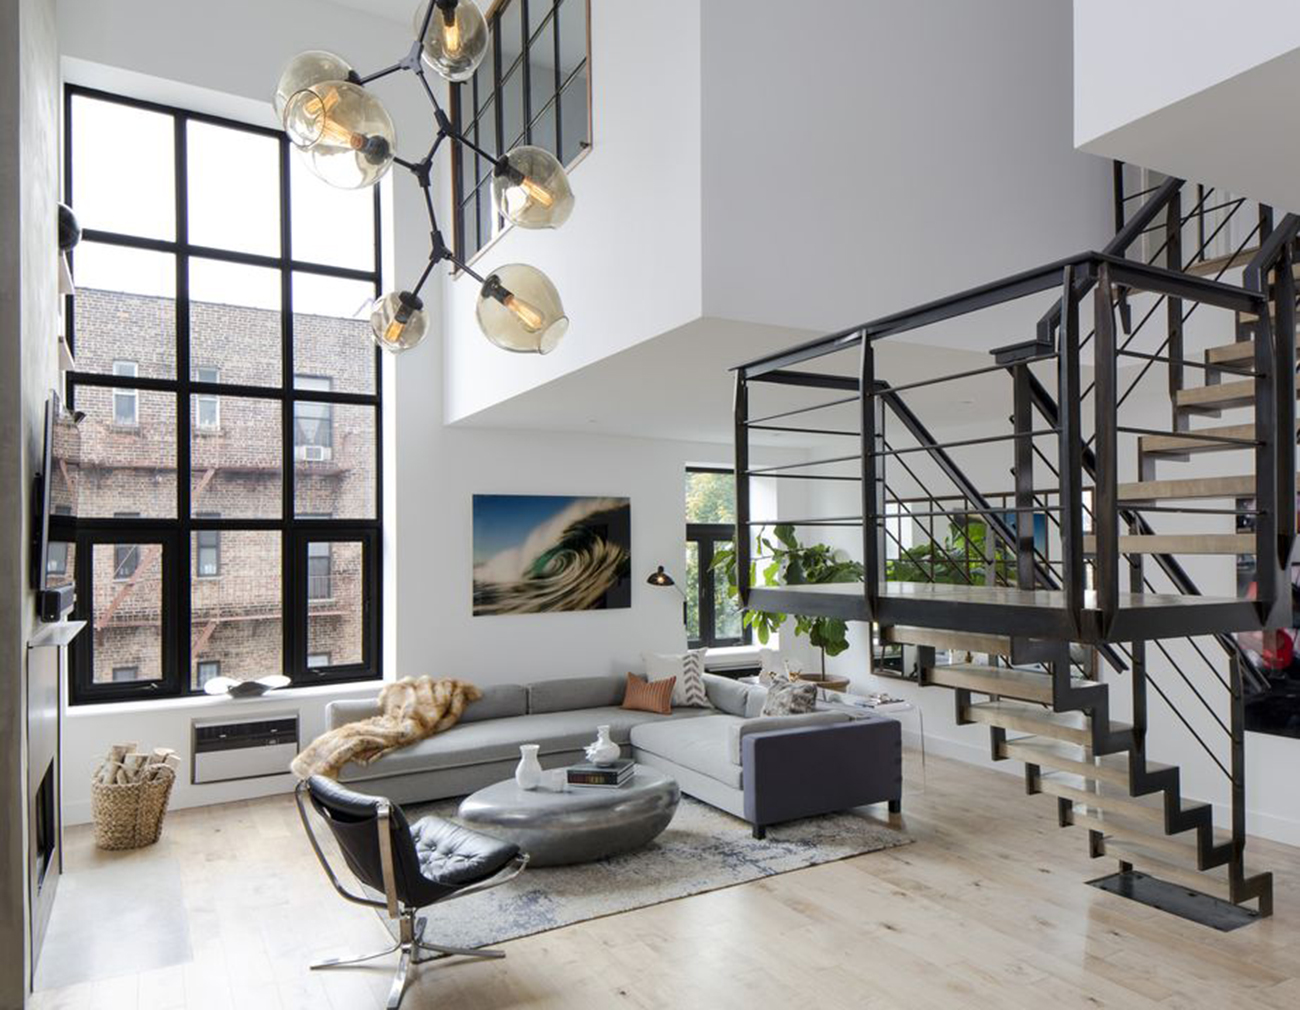 New York apartment for rent 6 of the best apartments to